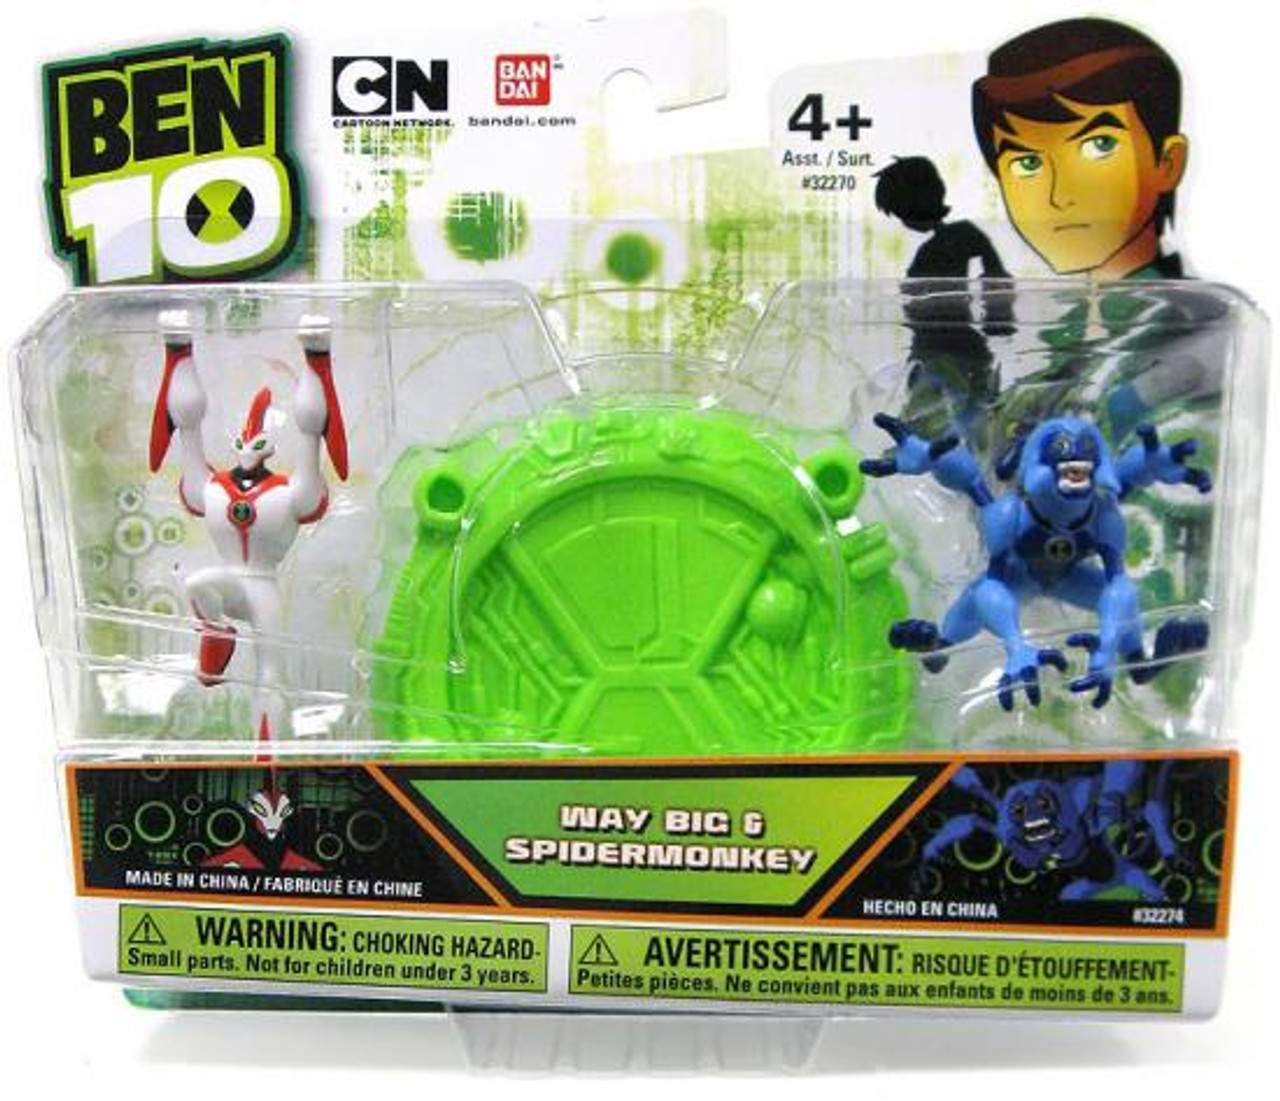 Ben 10 Way Big & Spidermonkey 2.5-Inch Mini Figure 2-Pack